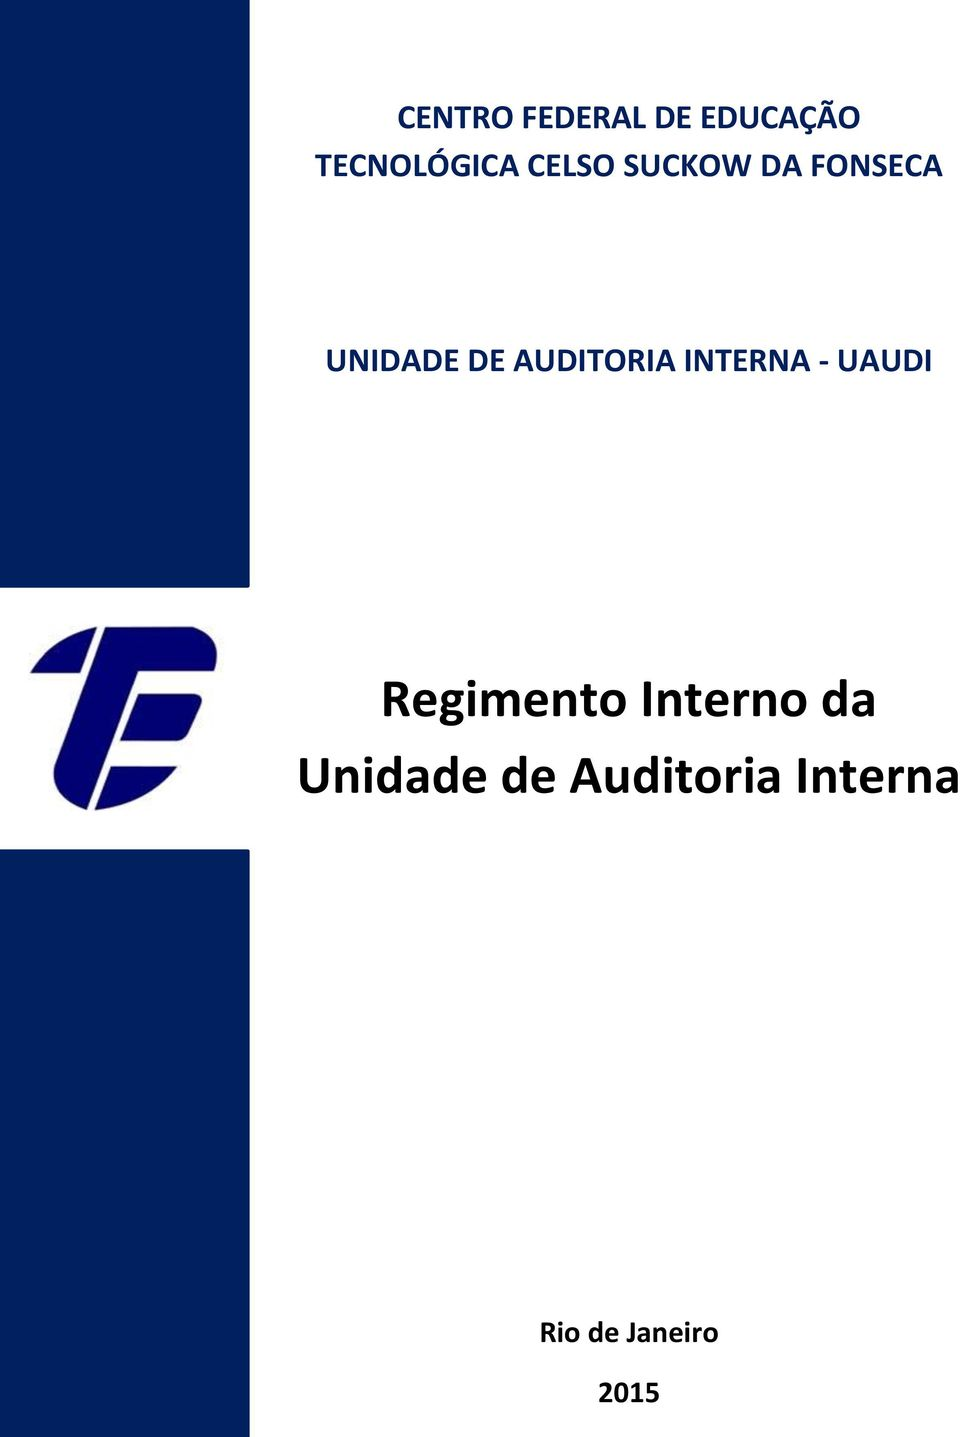 AUDITORIA INTERNA - UAUDI Regimento